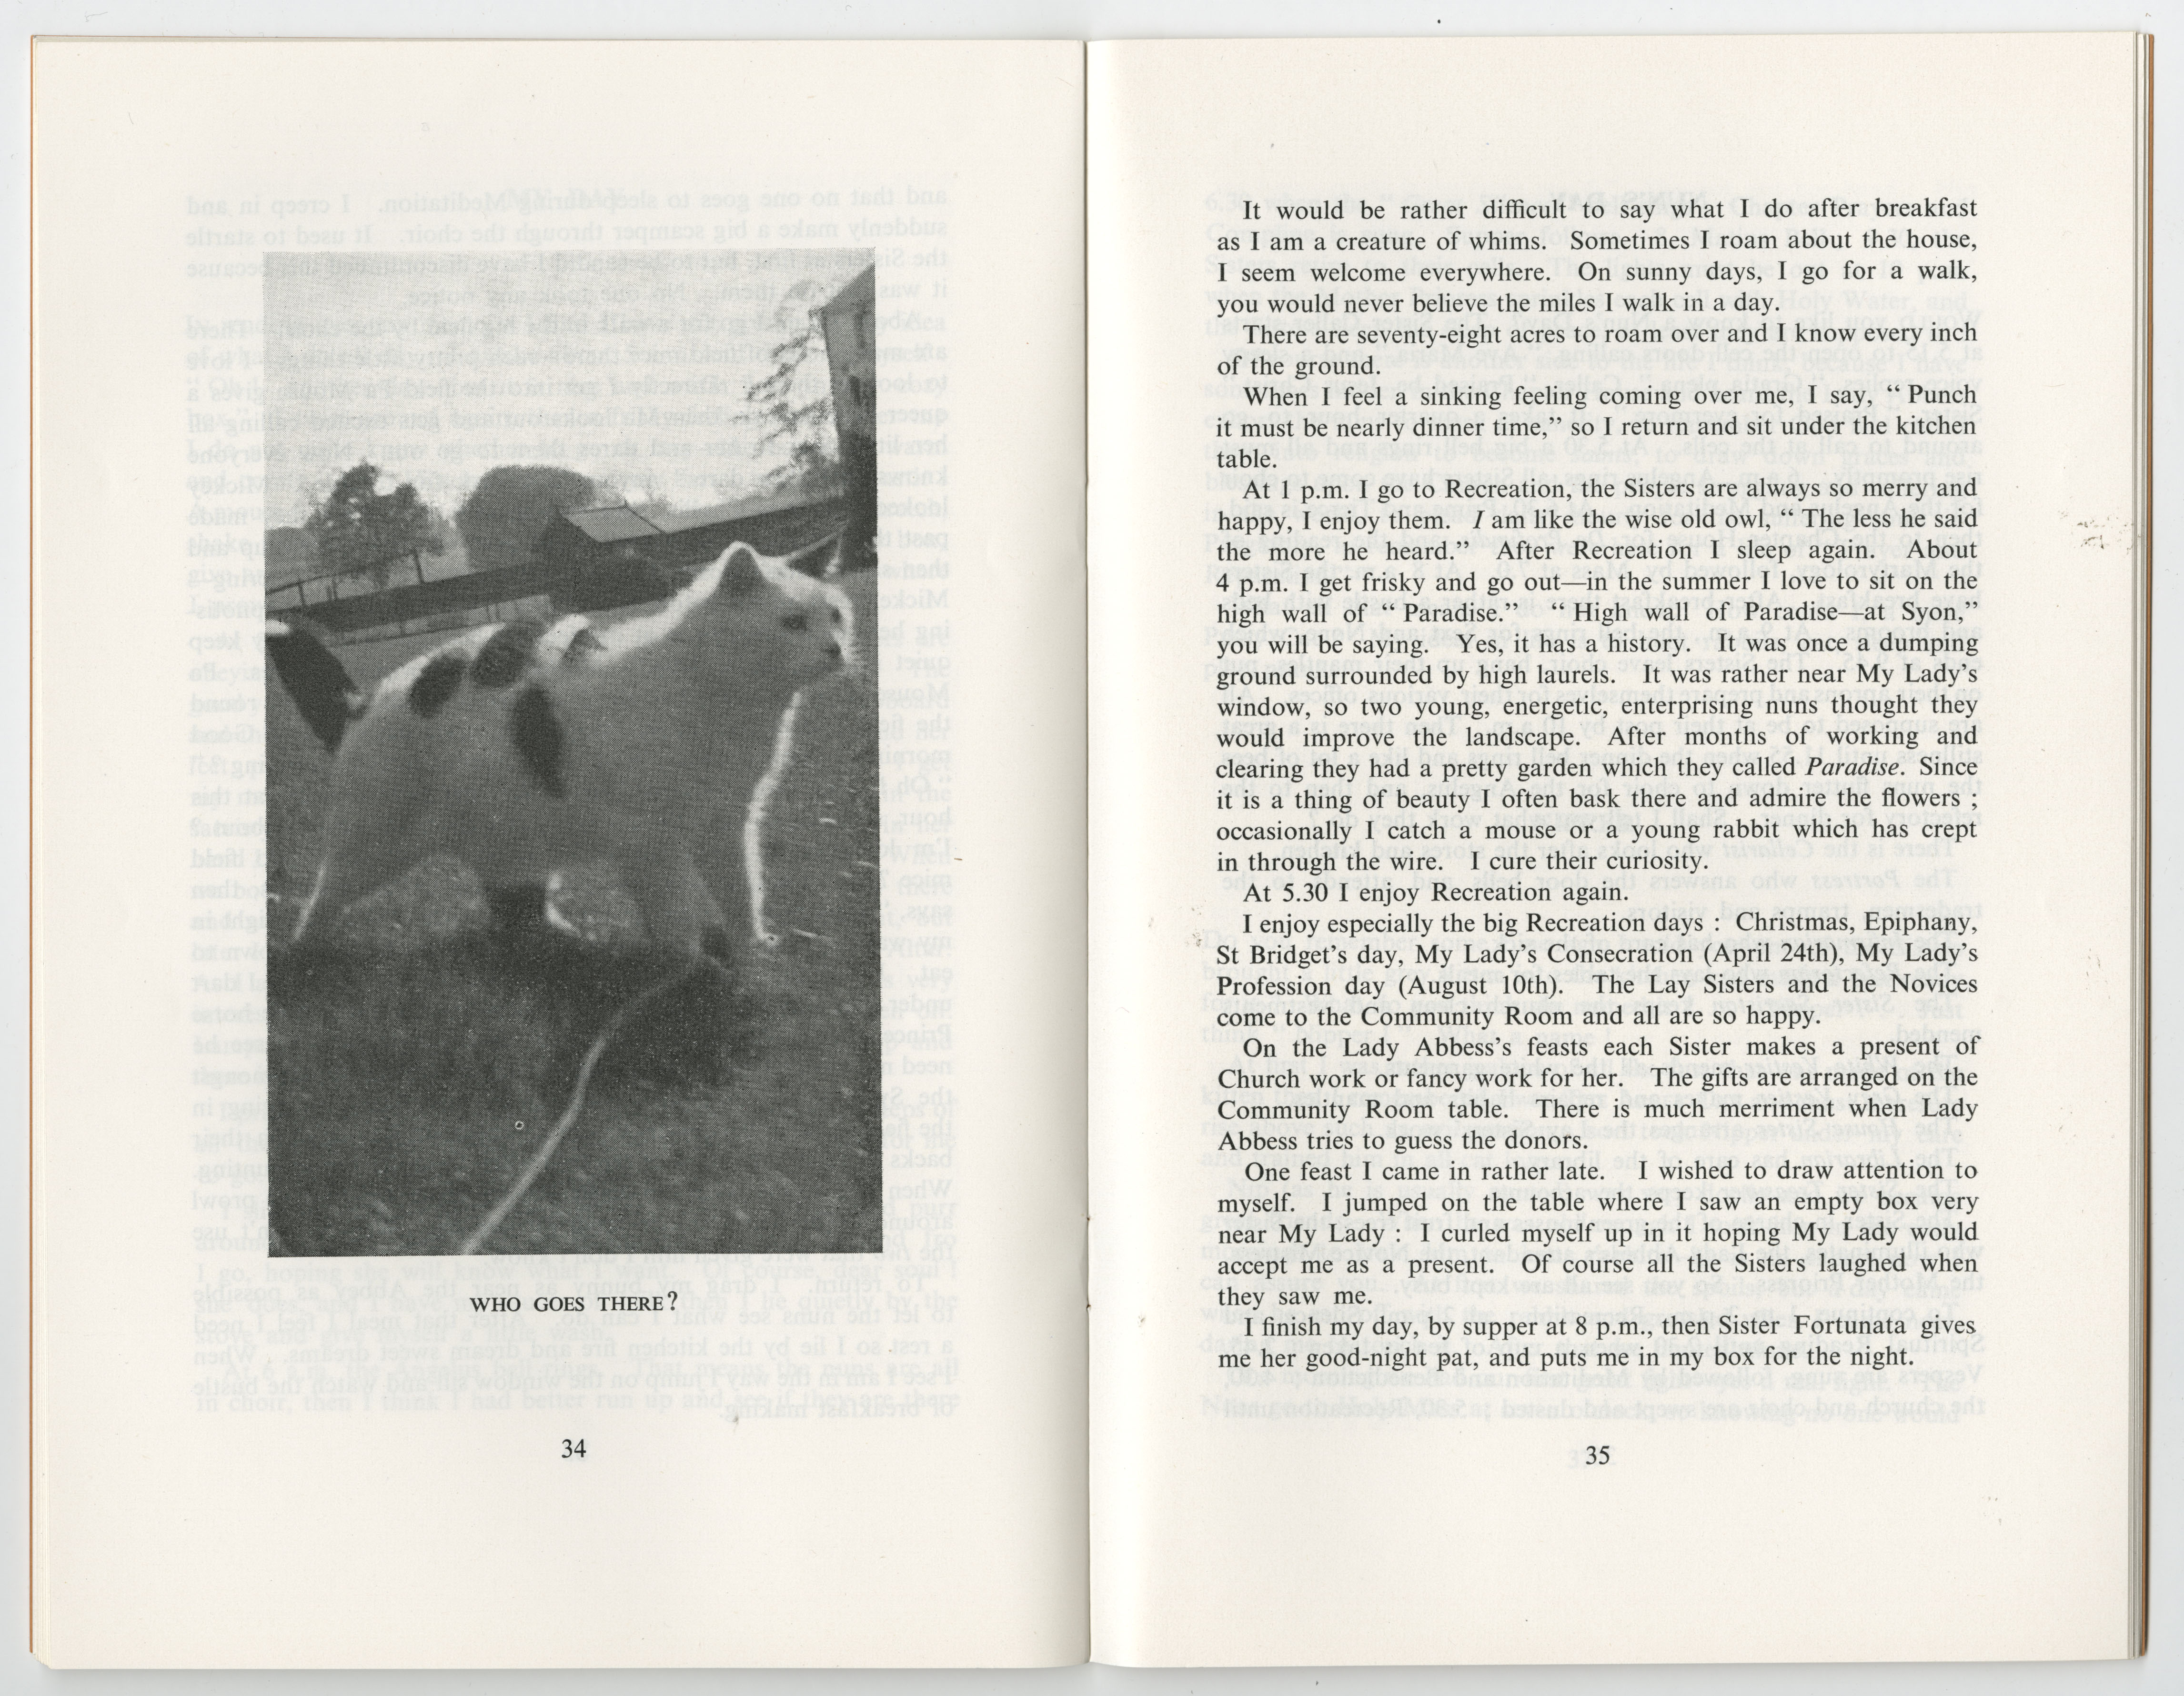 Page 34 and 35 of the pamphlet 'What the Abbey Cat Saw' (Reference EUL MS 389/PUB/2/1)